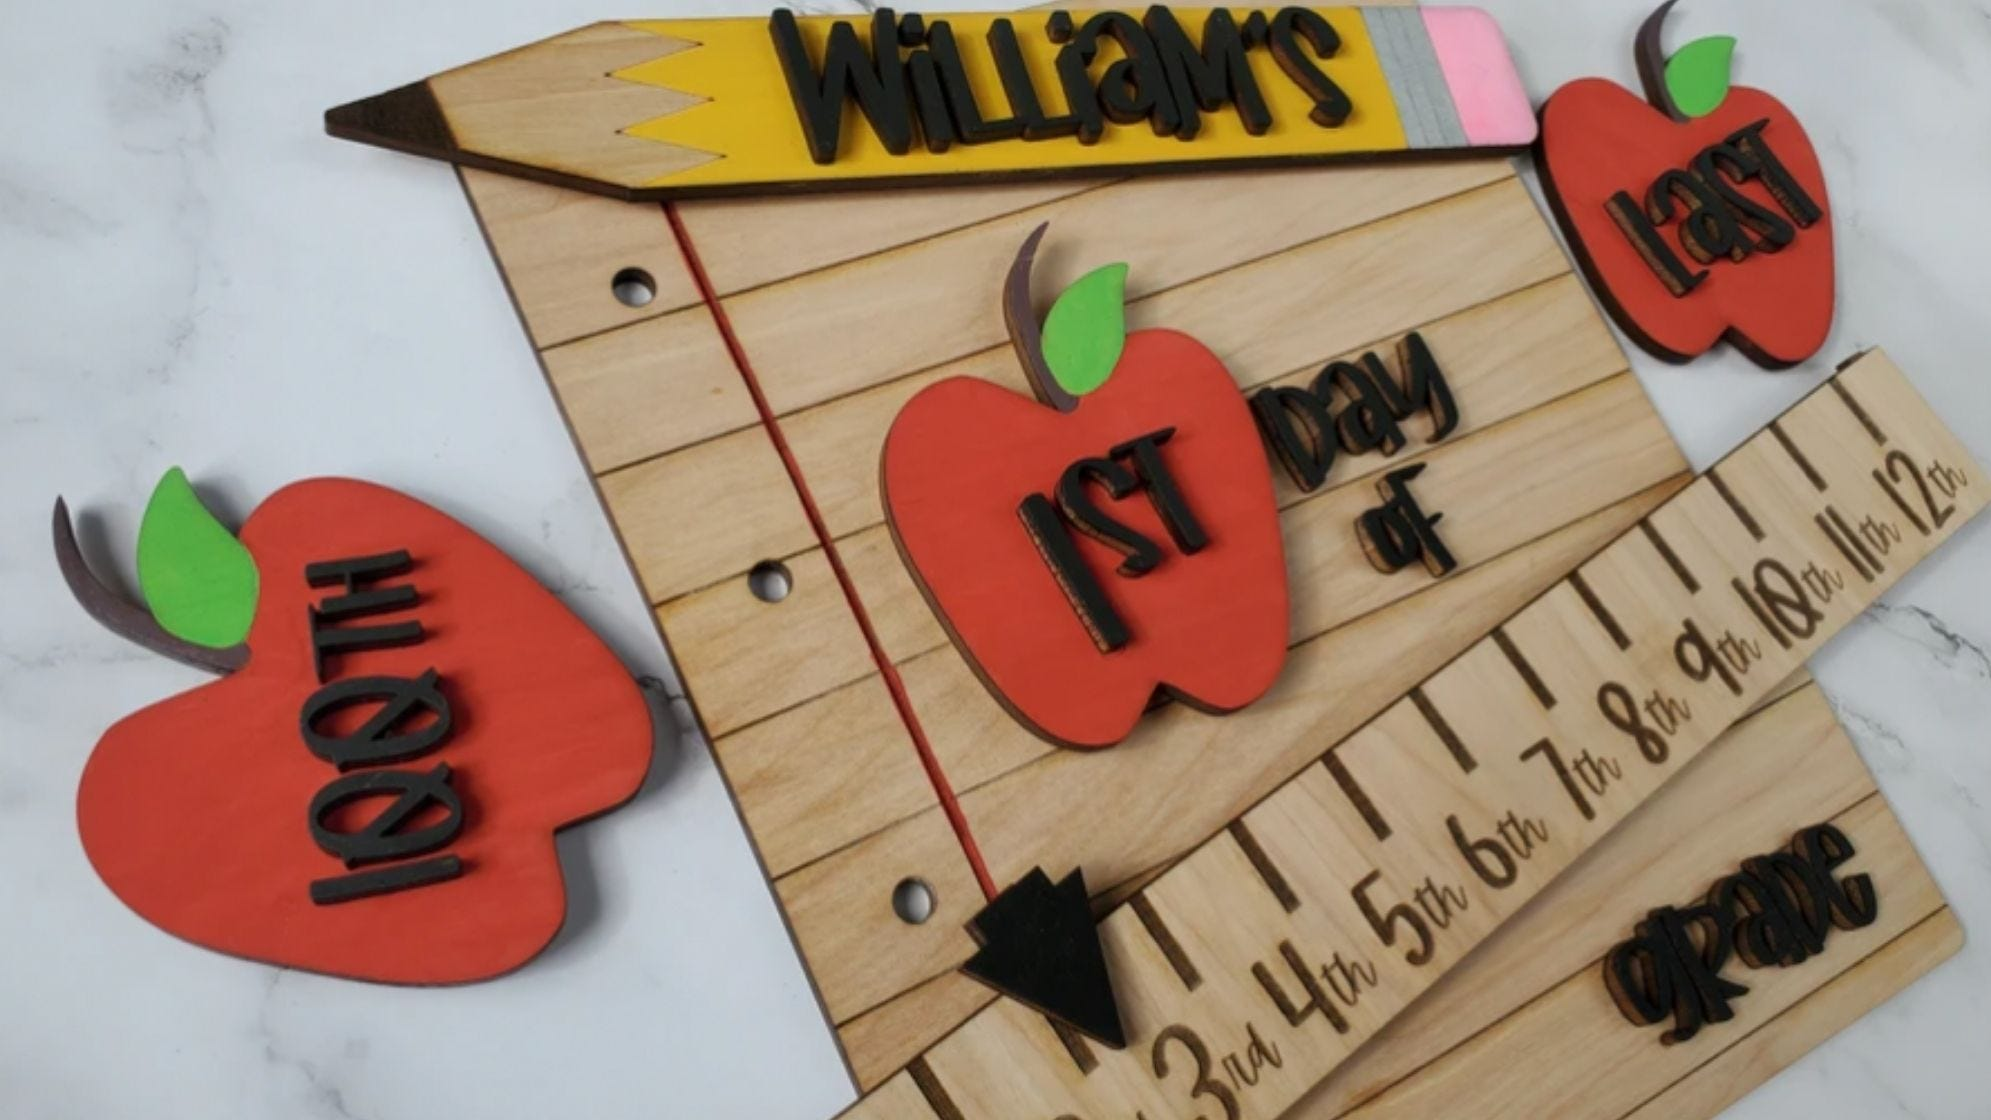 Apples, a ruler, and a pencil hit on all the first day iconography.